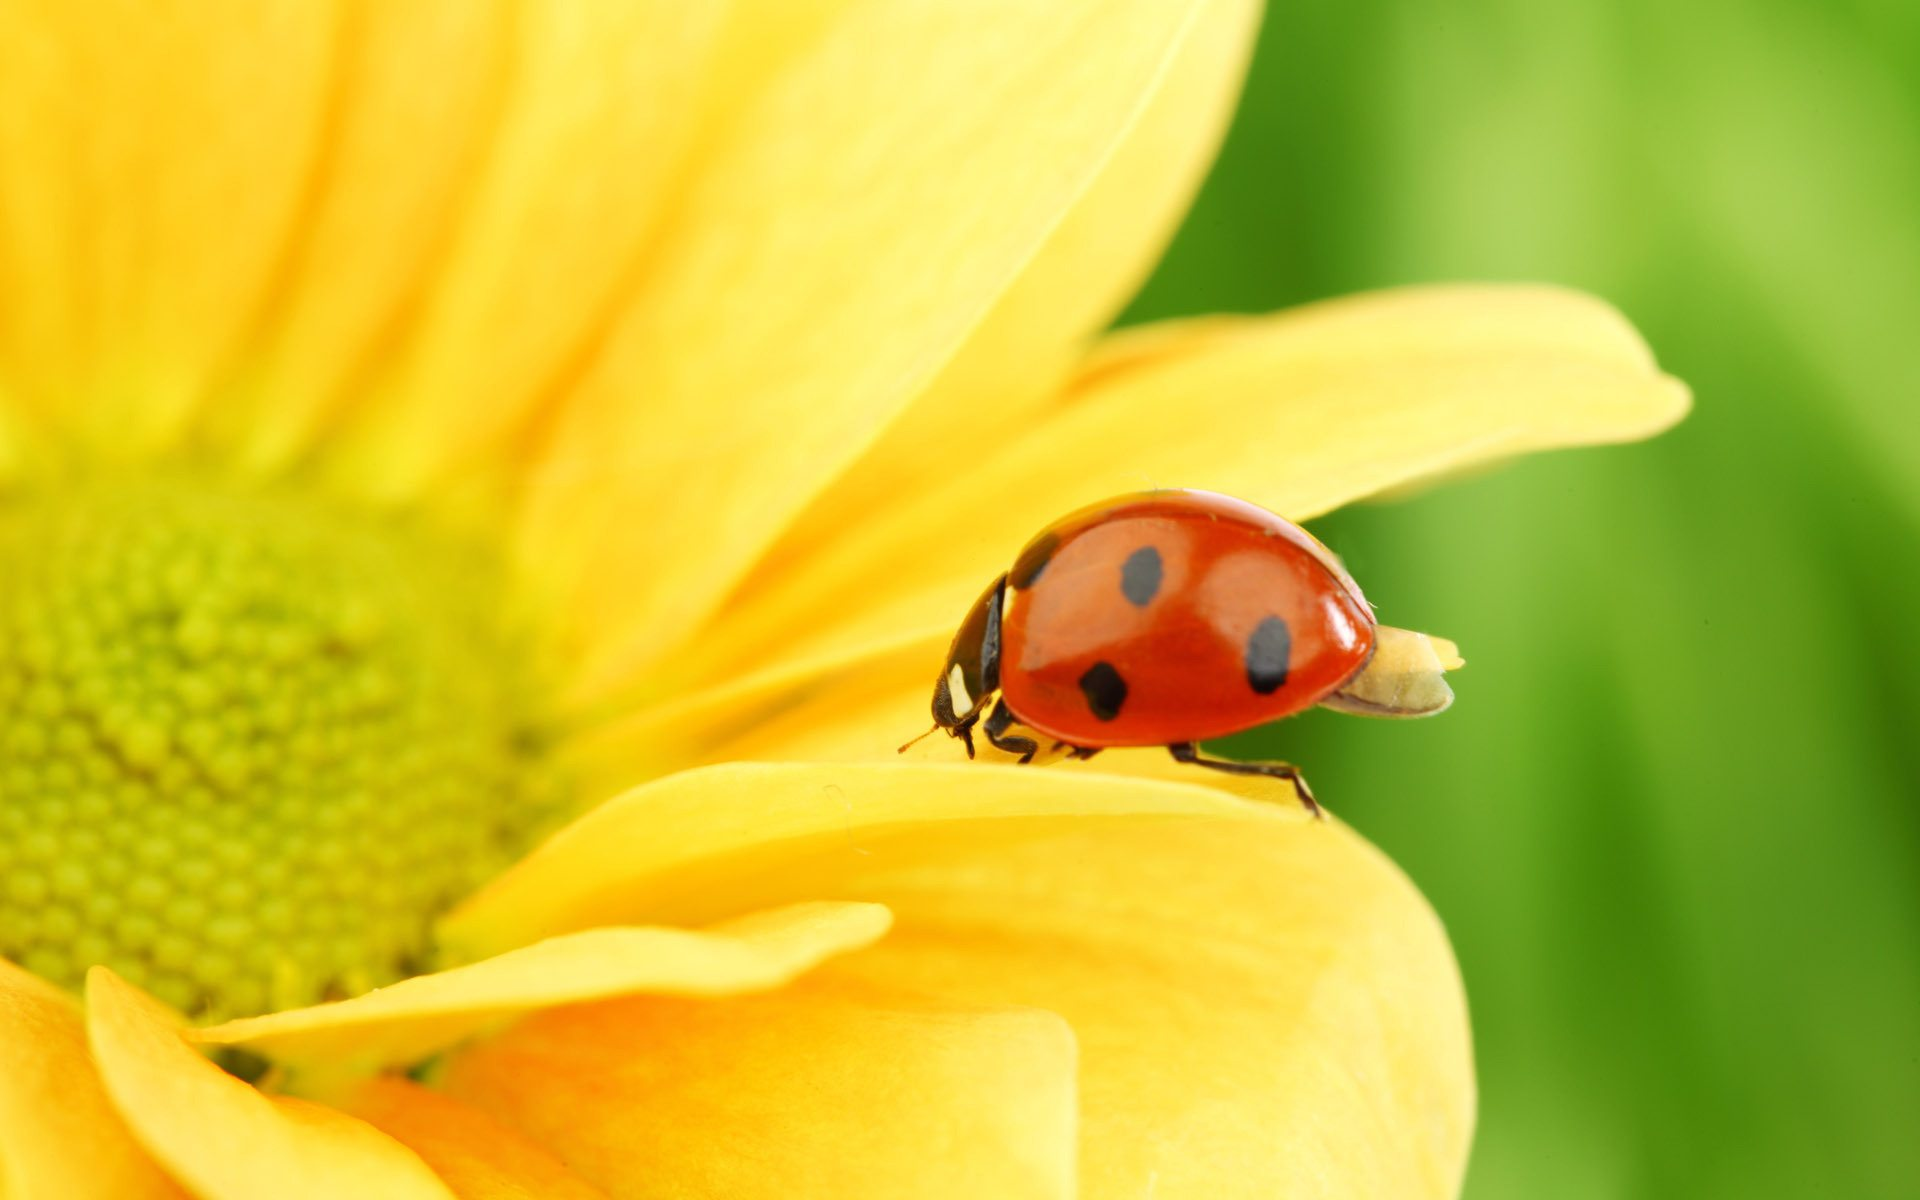 Lady-Bugs-Macro-Photography-36-22141-Cool-Wallpapers-HD